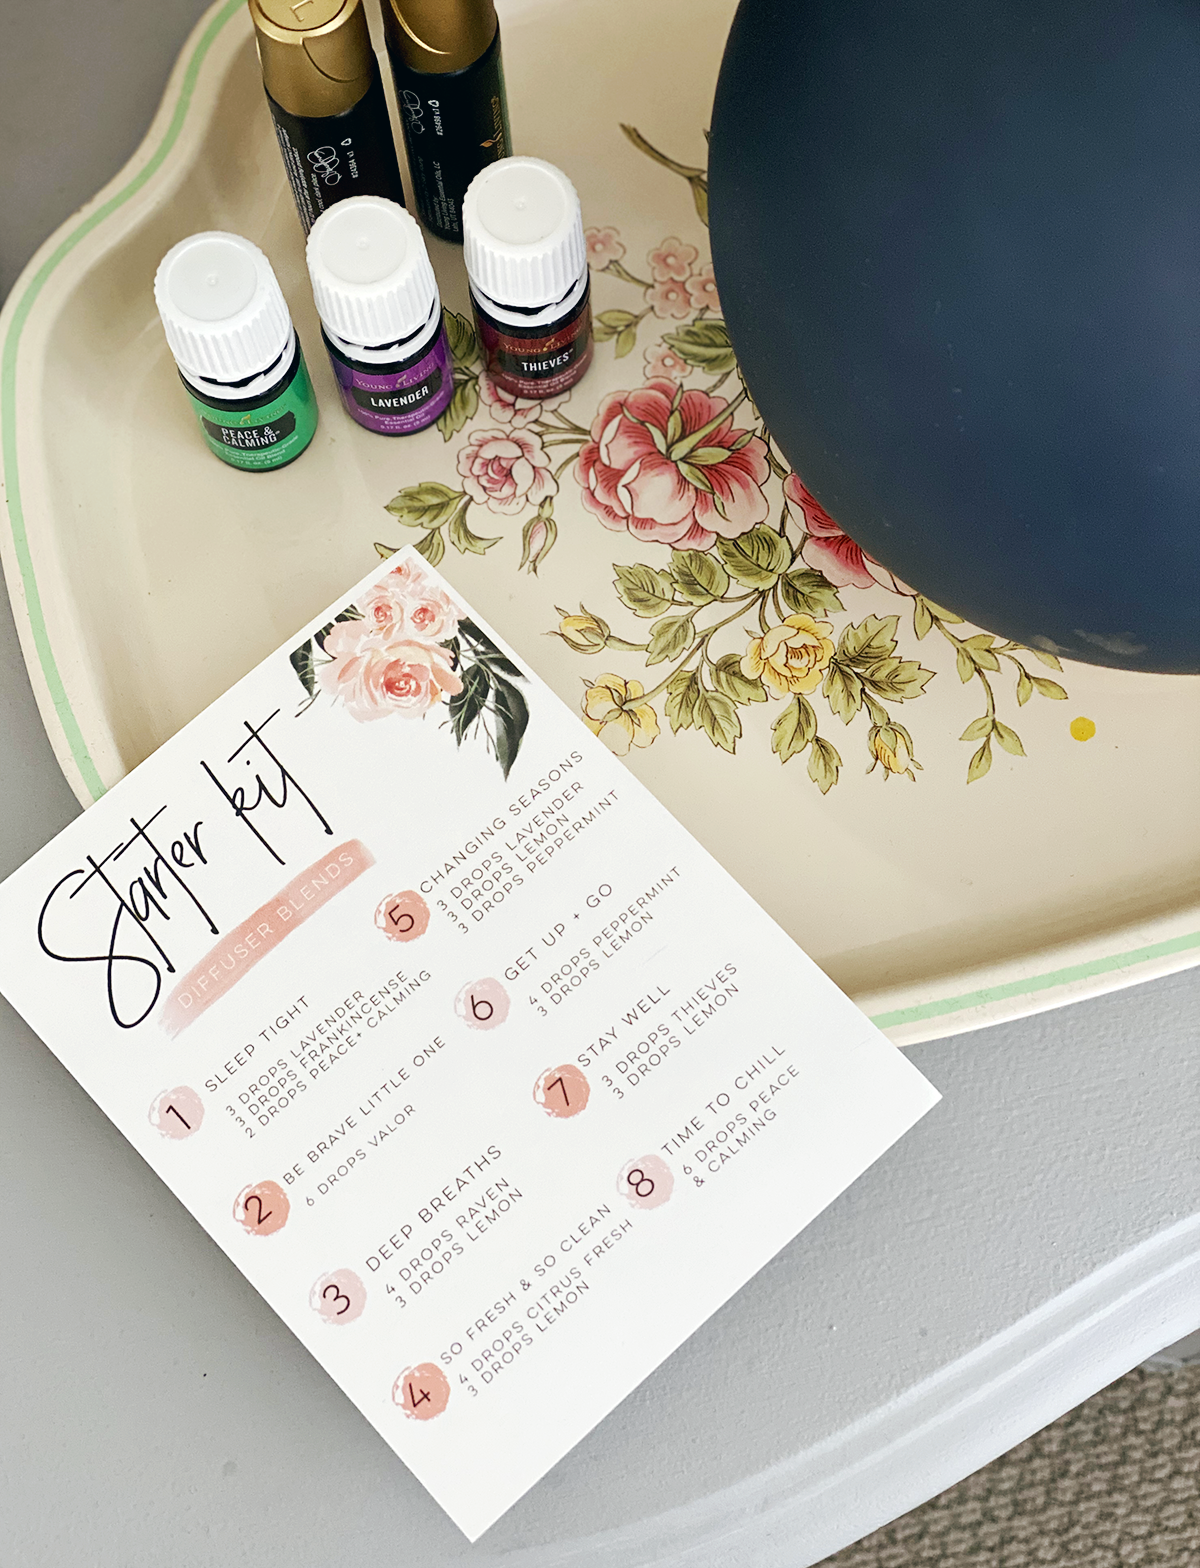 Diffuser blends using a Young Living Starter Kit